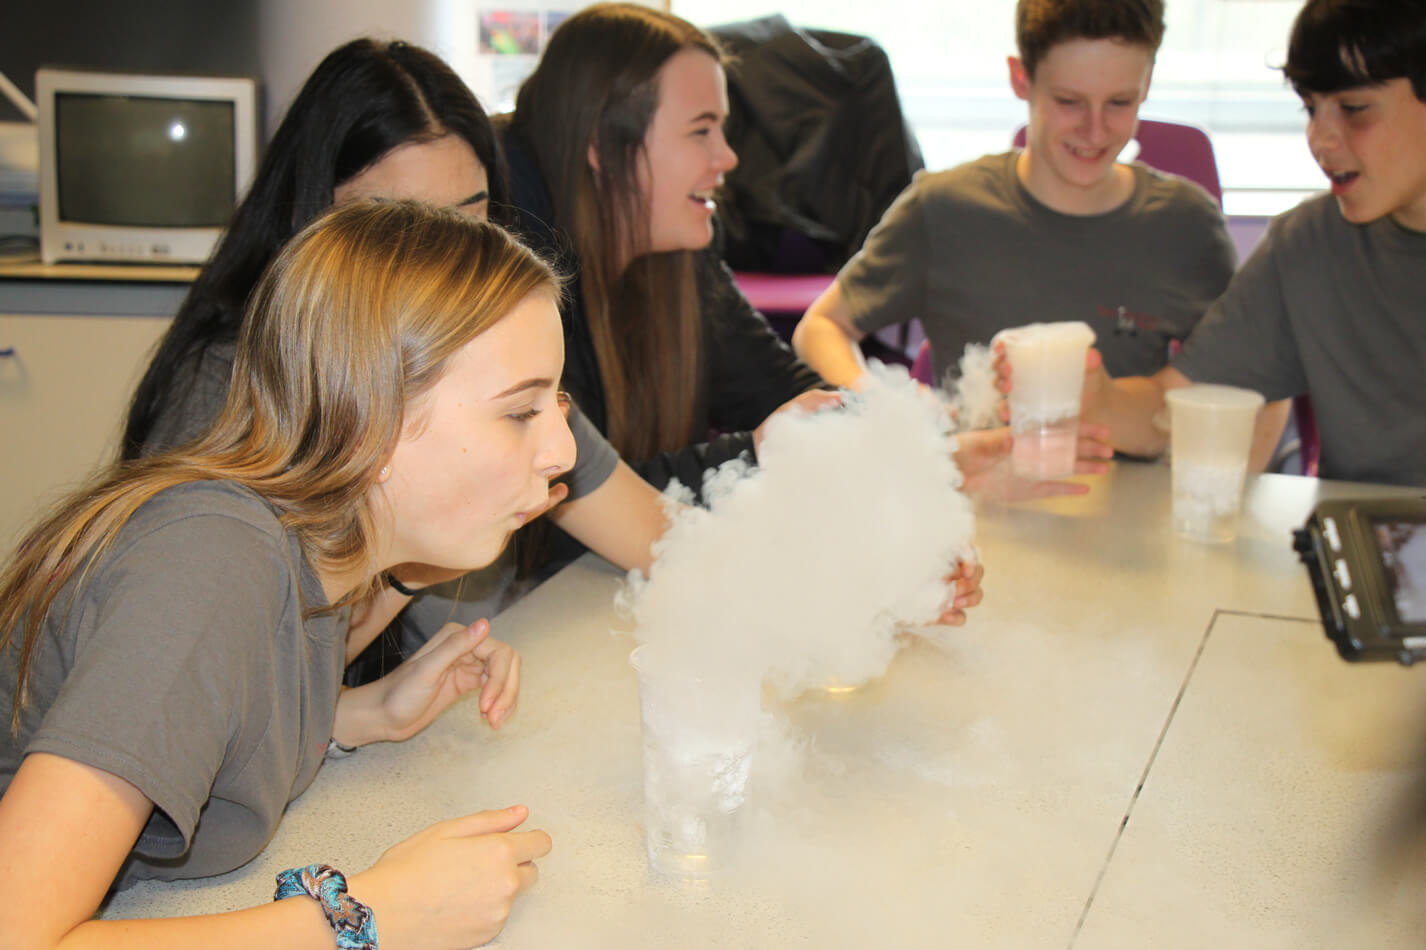 School pupils enjoying science experiments.